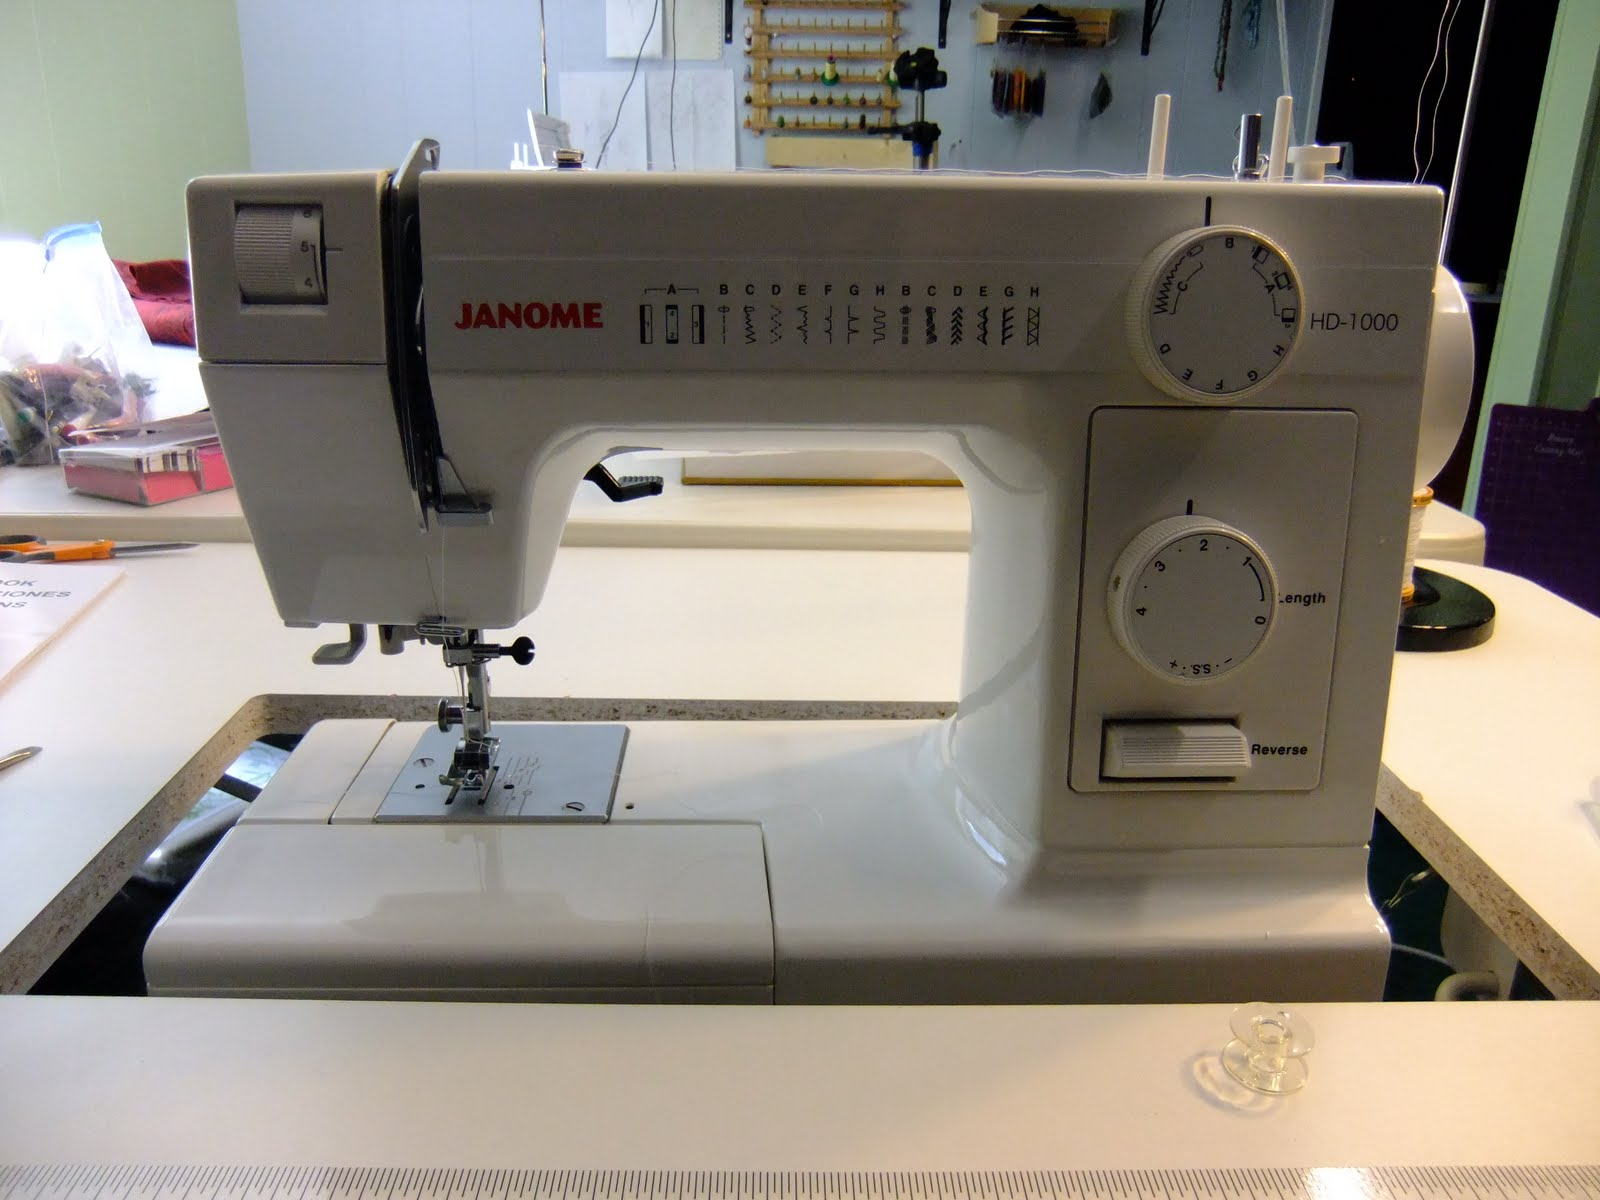 atelier embroidery janome quilting machine quilt computerised machines sewing